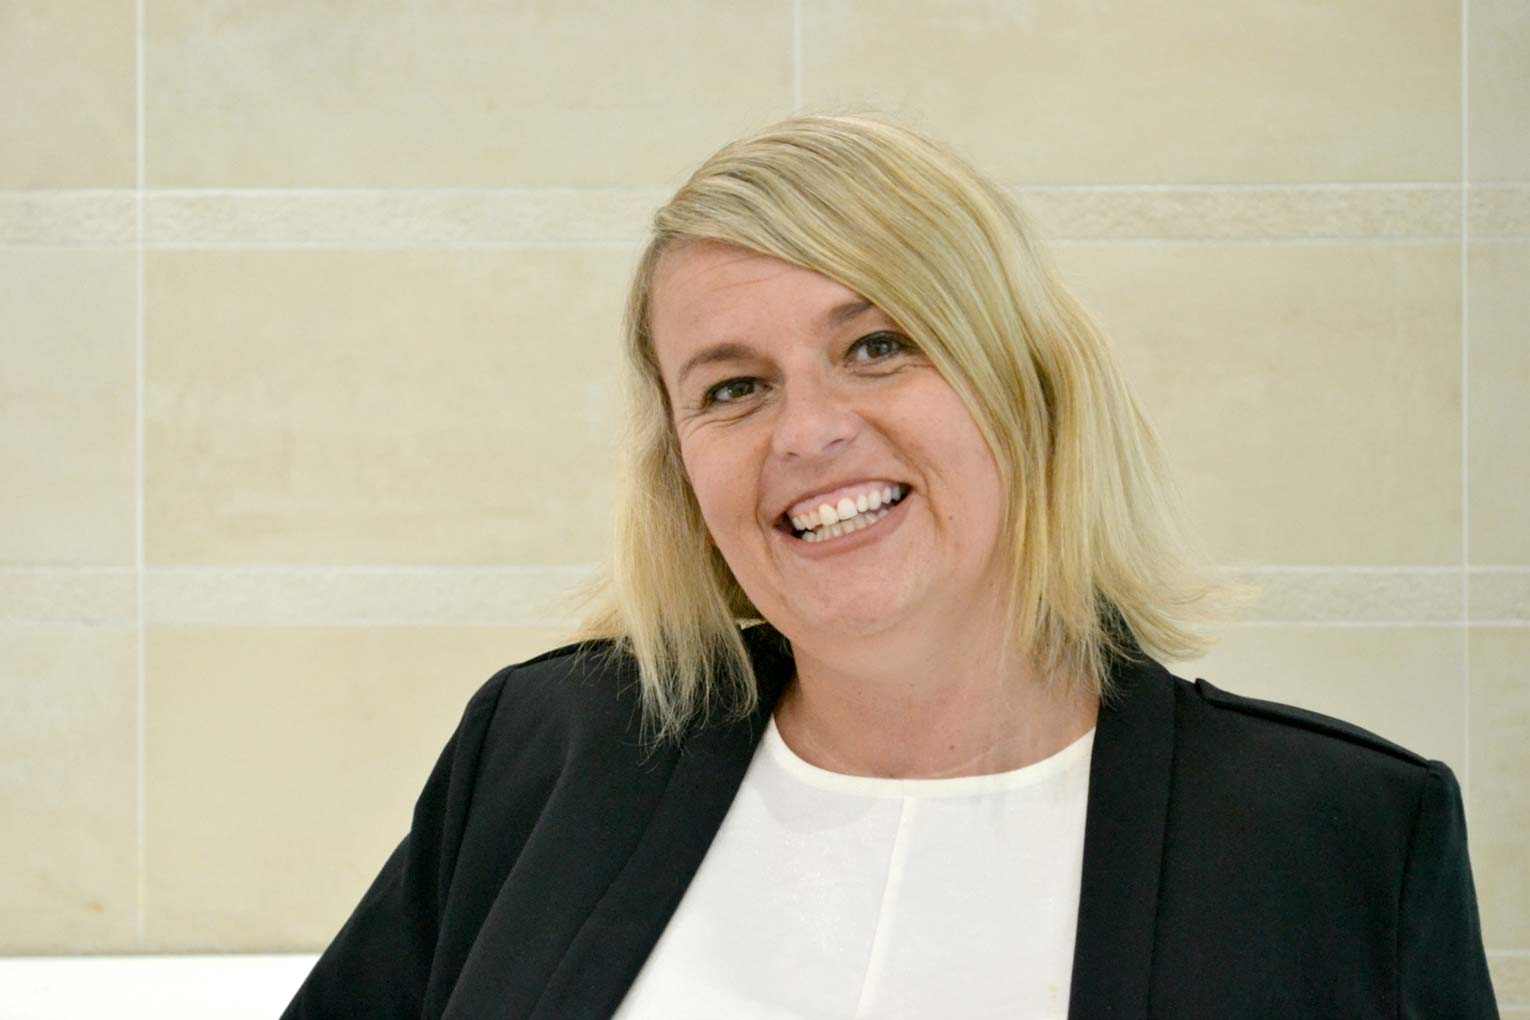 Sarah Hartwell joins The Mortgage Lender